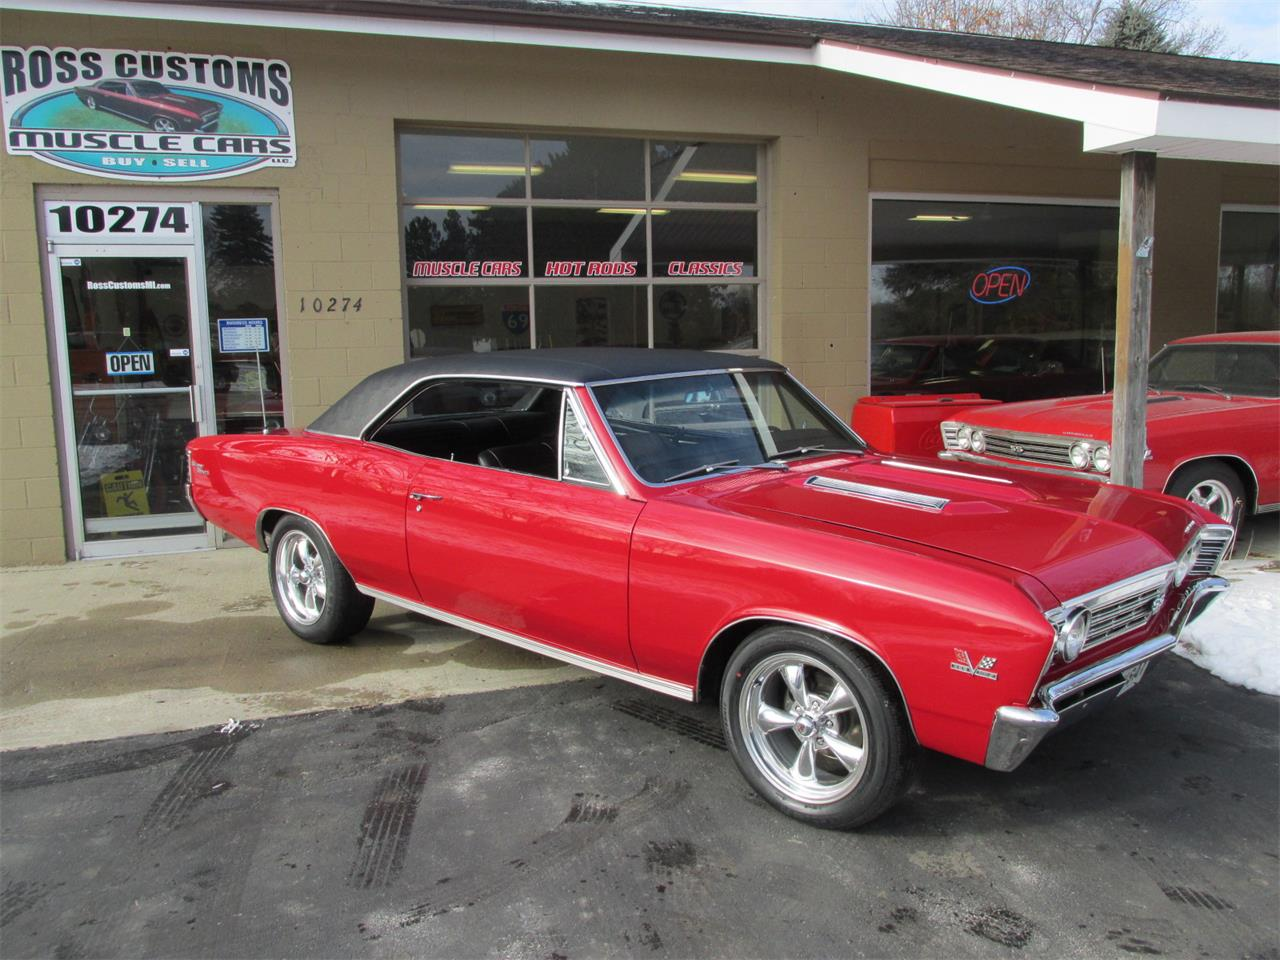 For Sale: 1967 Chevrolet Chevelle SS in Goodrich, Michigan